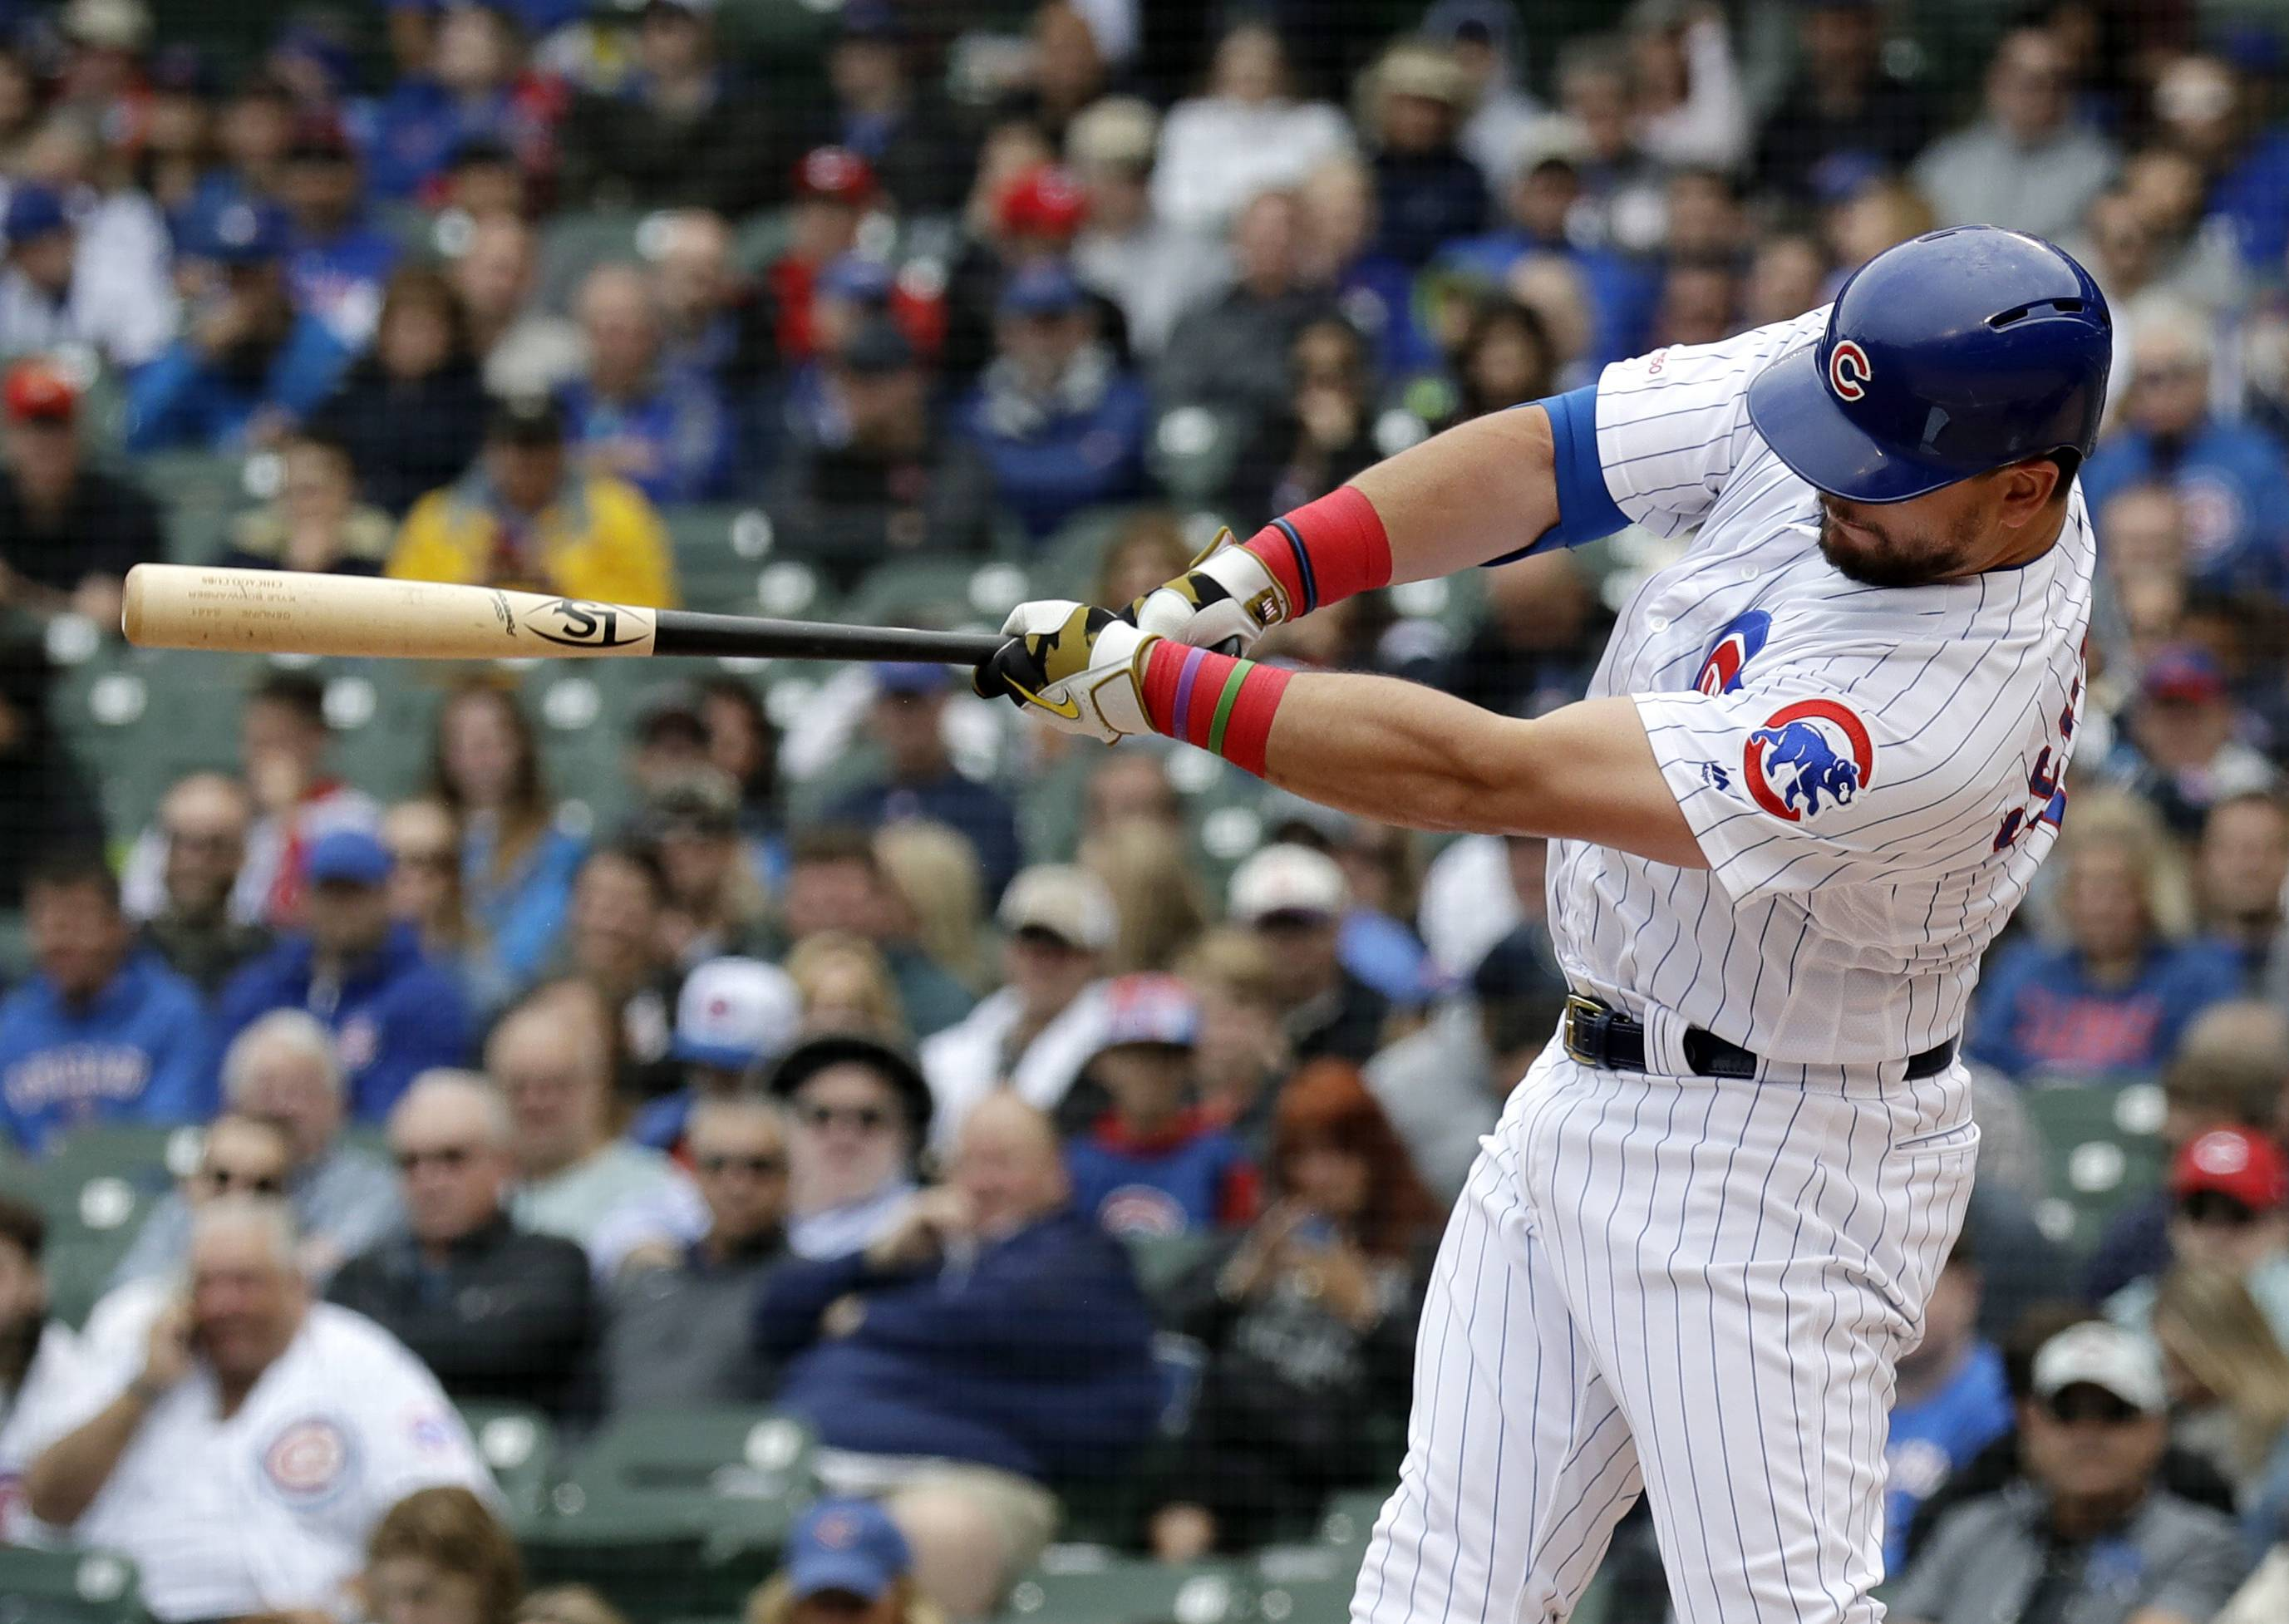 Chicago Cubs' Kyle Schwarber hits a solo home run during the first inning Friday against the Reds at Wrigley Field. It was Schwarber's eighth homer of the season and his first career leadoff homer.